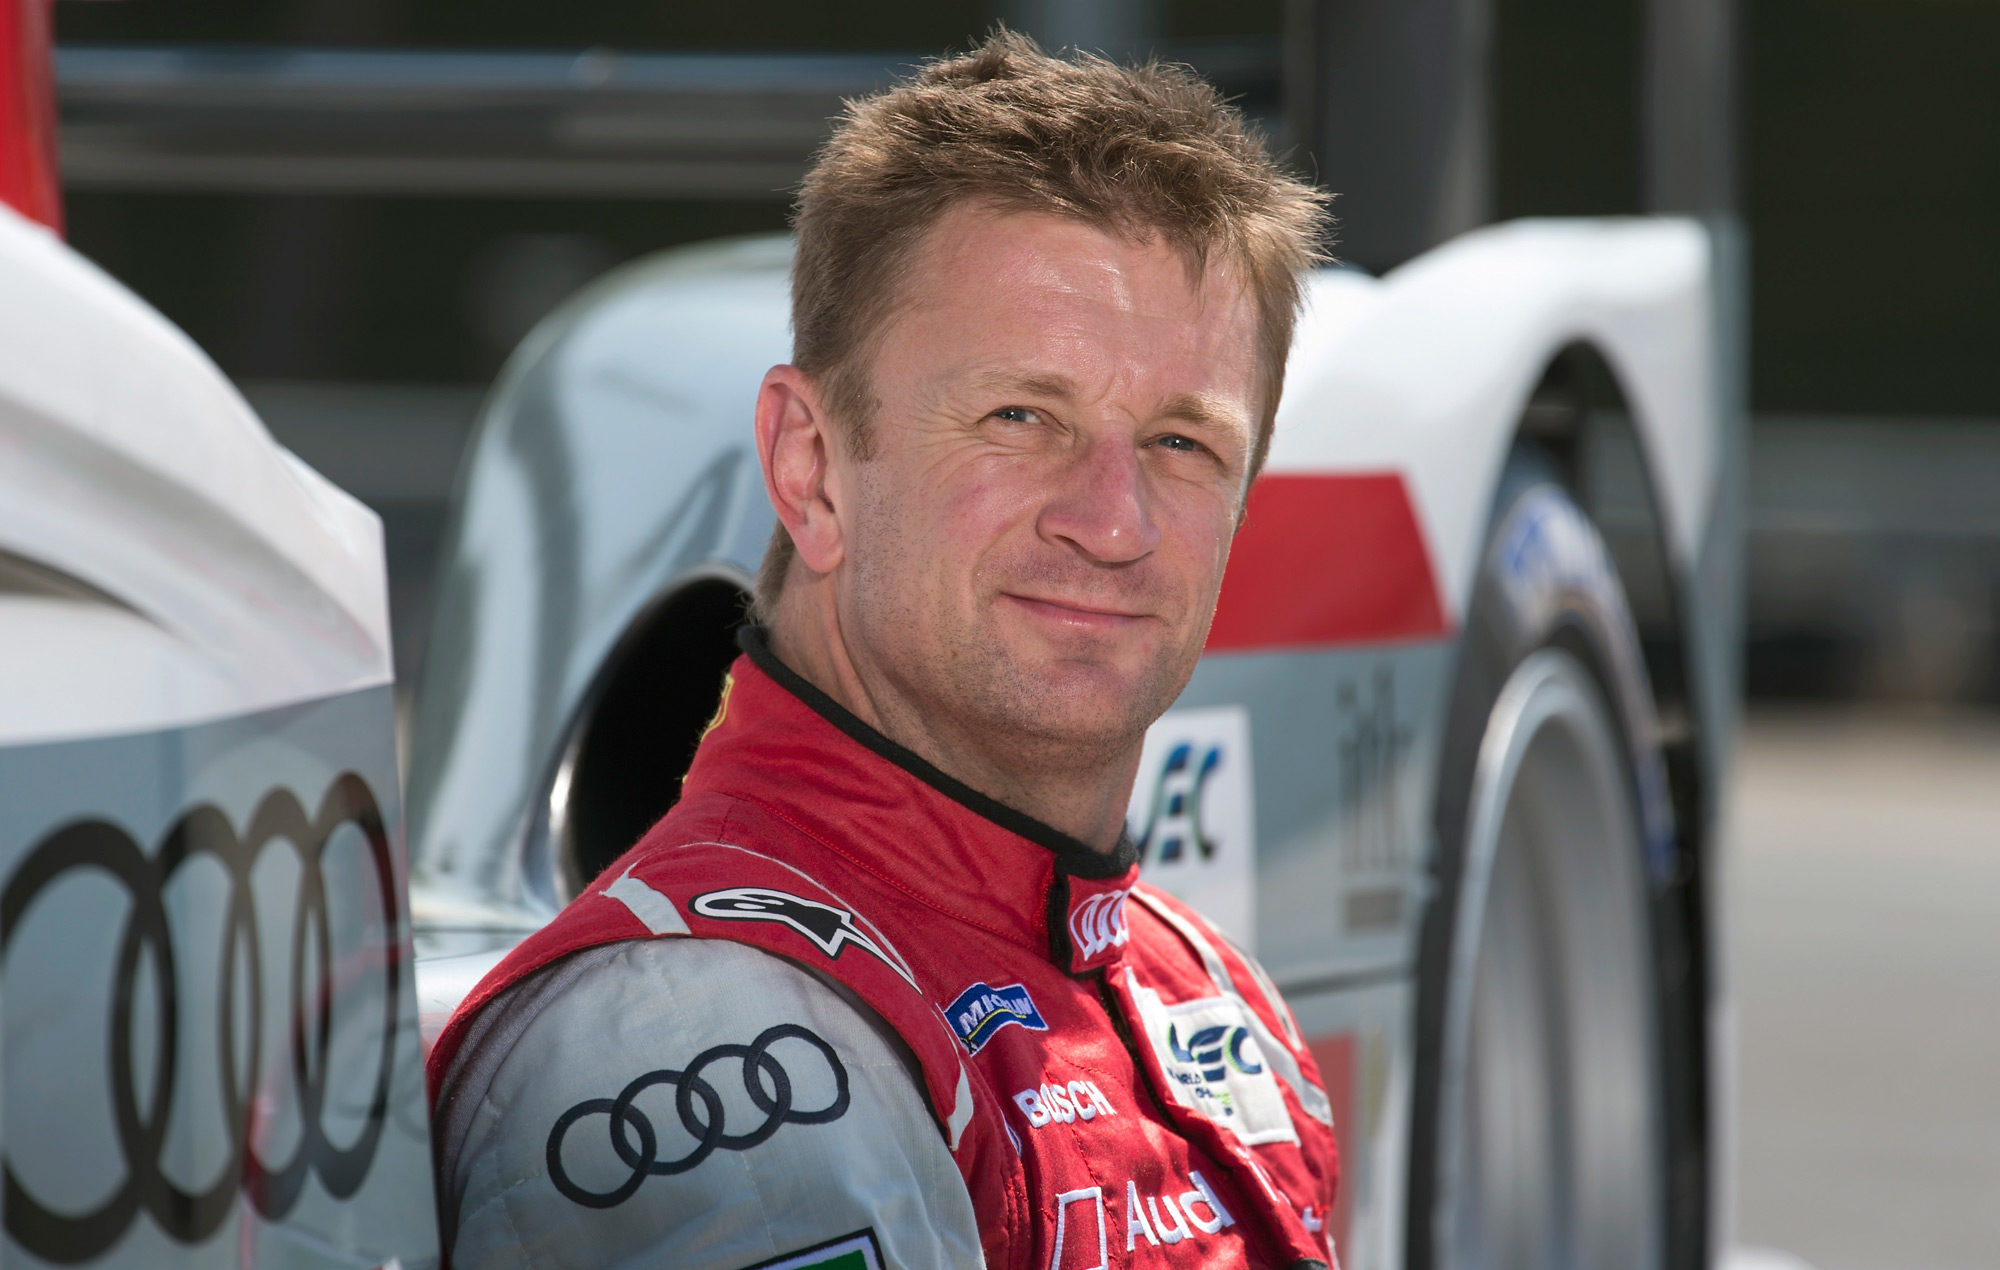 http://gpsportsmanagement.com/wp-content/uploads/2016/07/Audi-Motorsport-Allan-McNish-01-e1469646685991.jpg